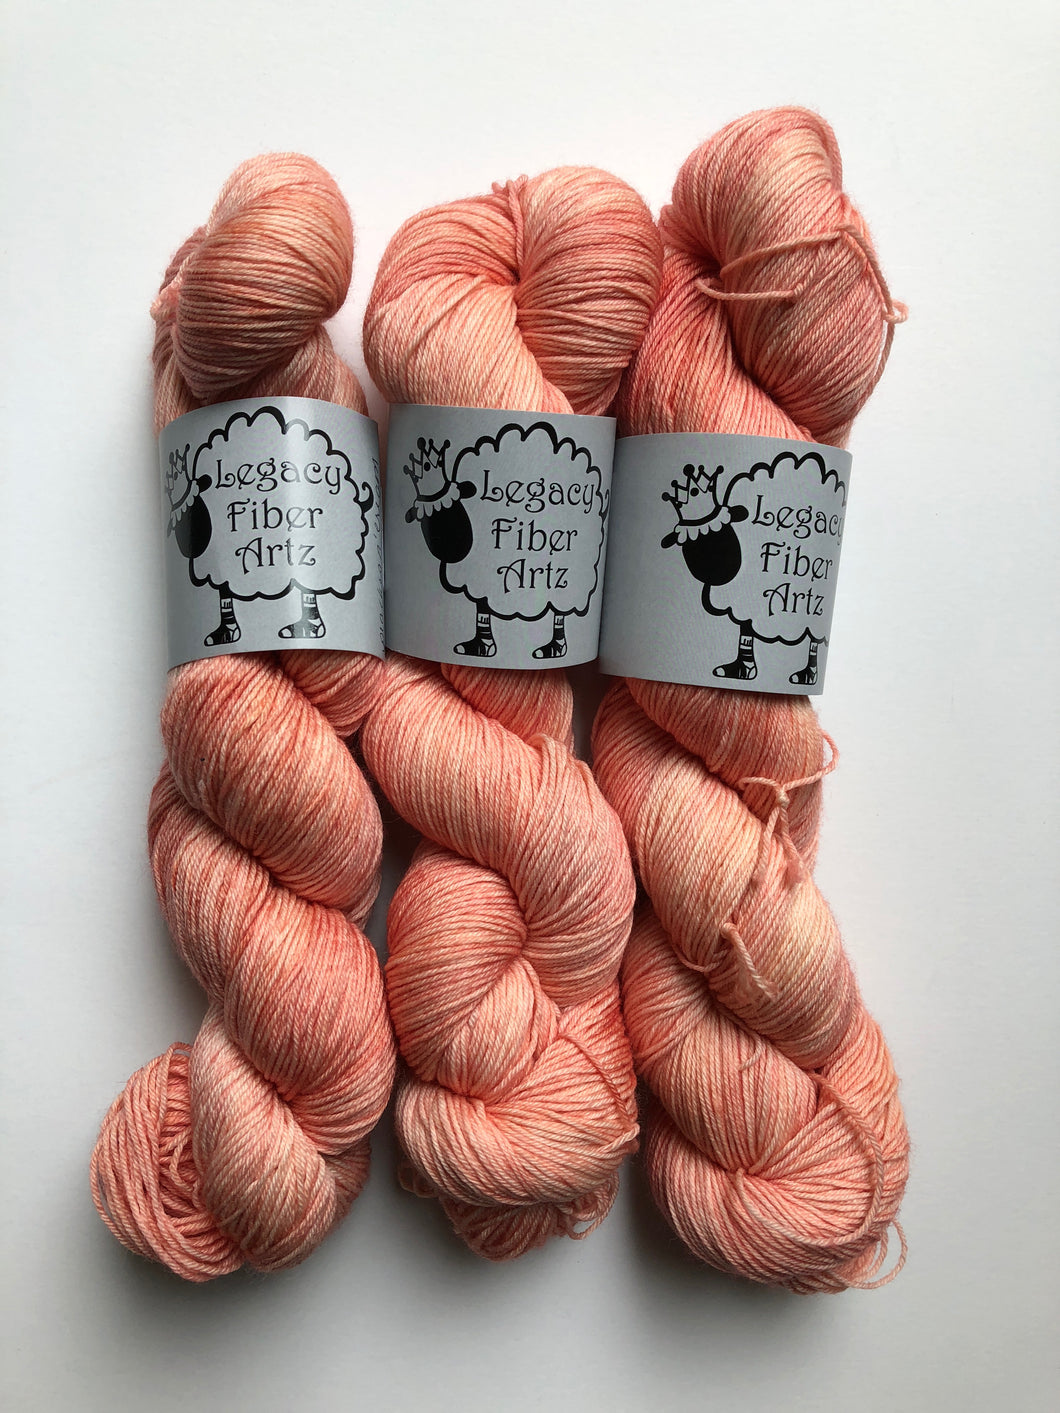 Peaches and Cream DK